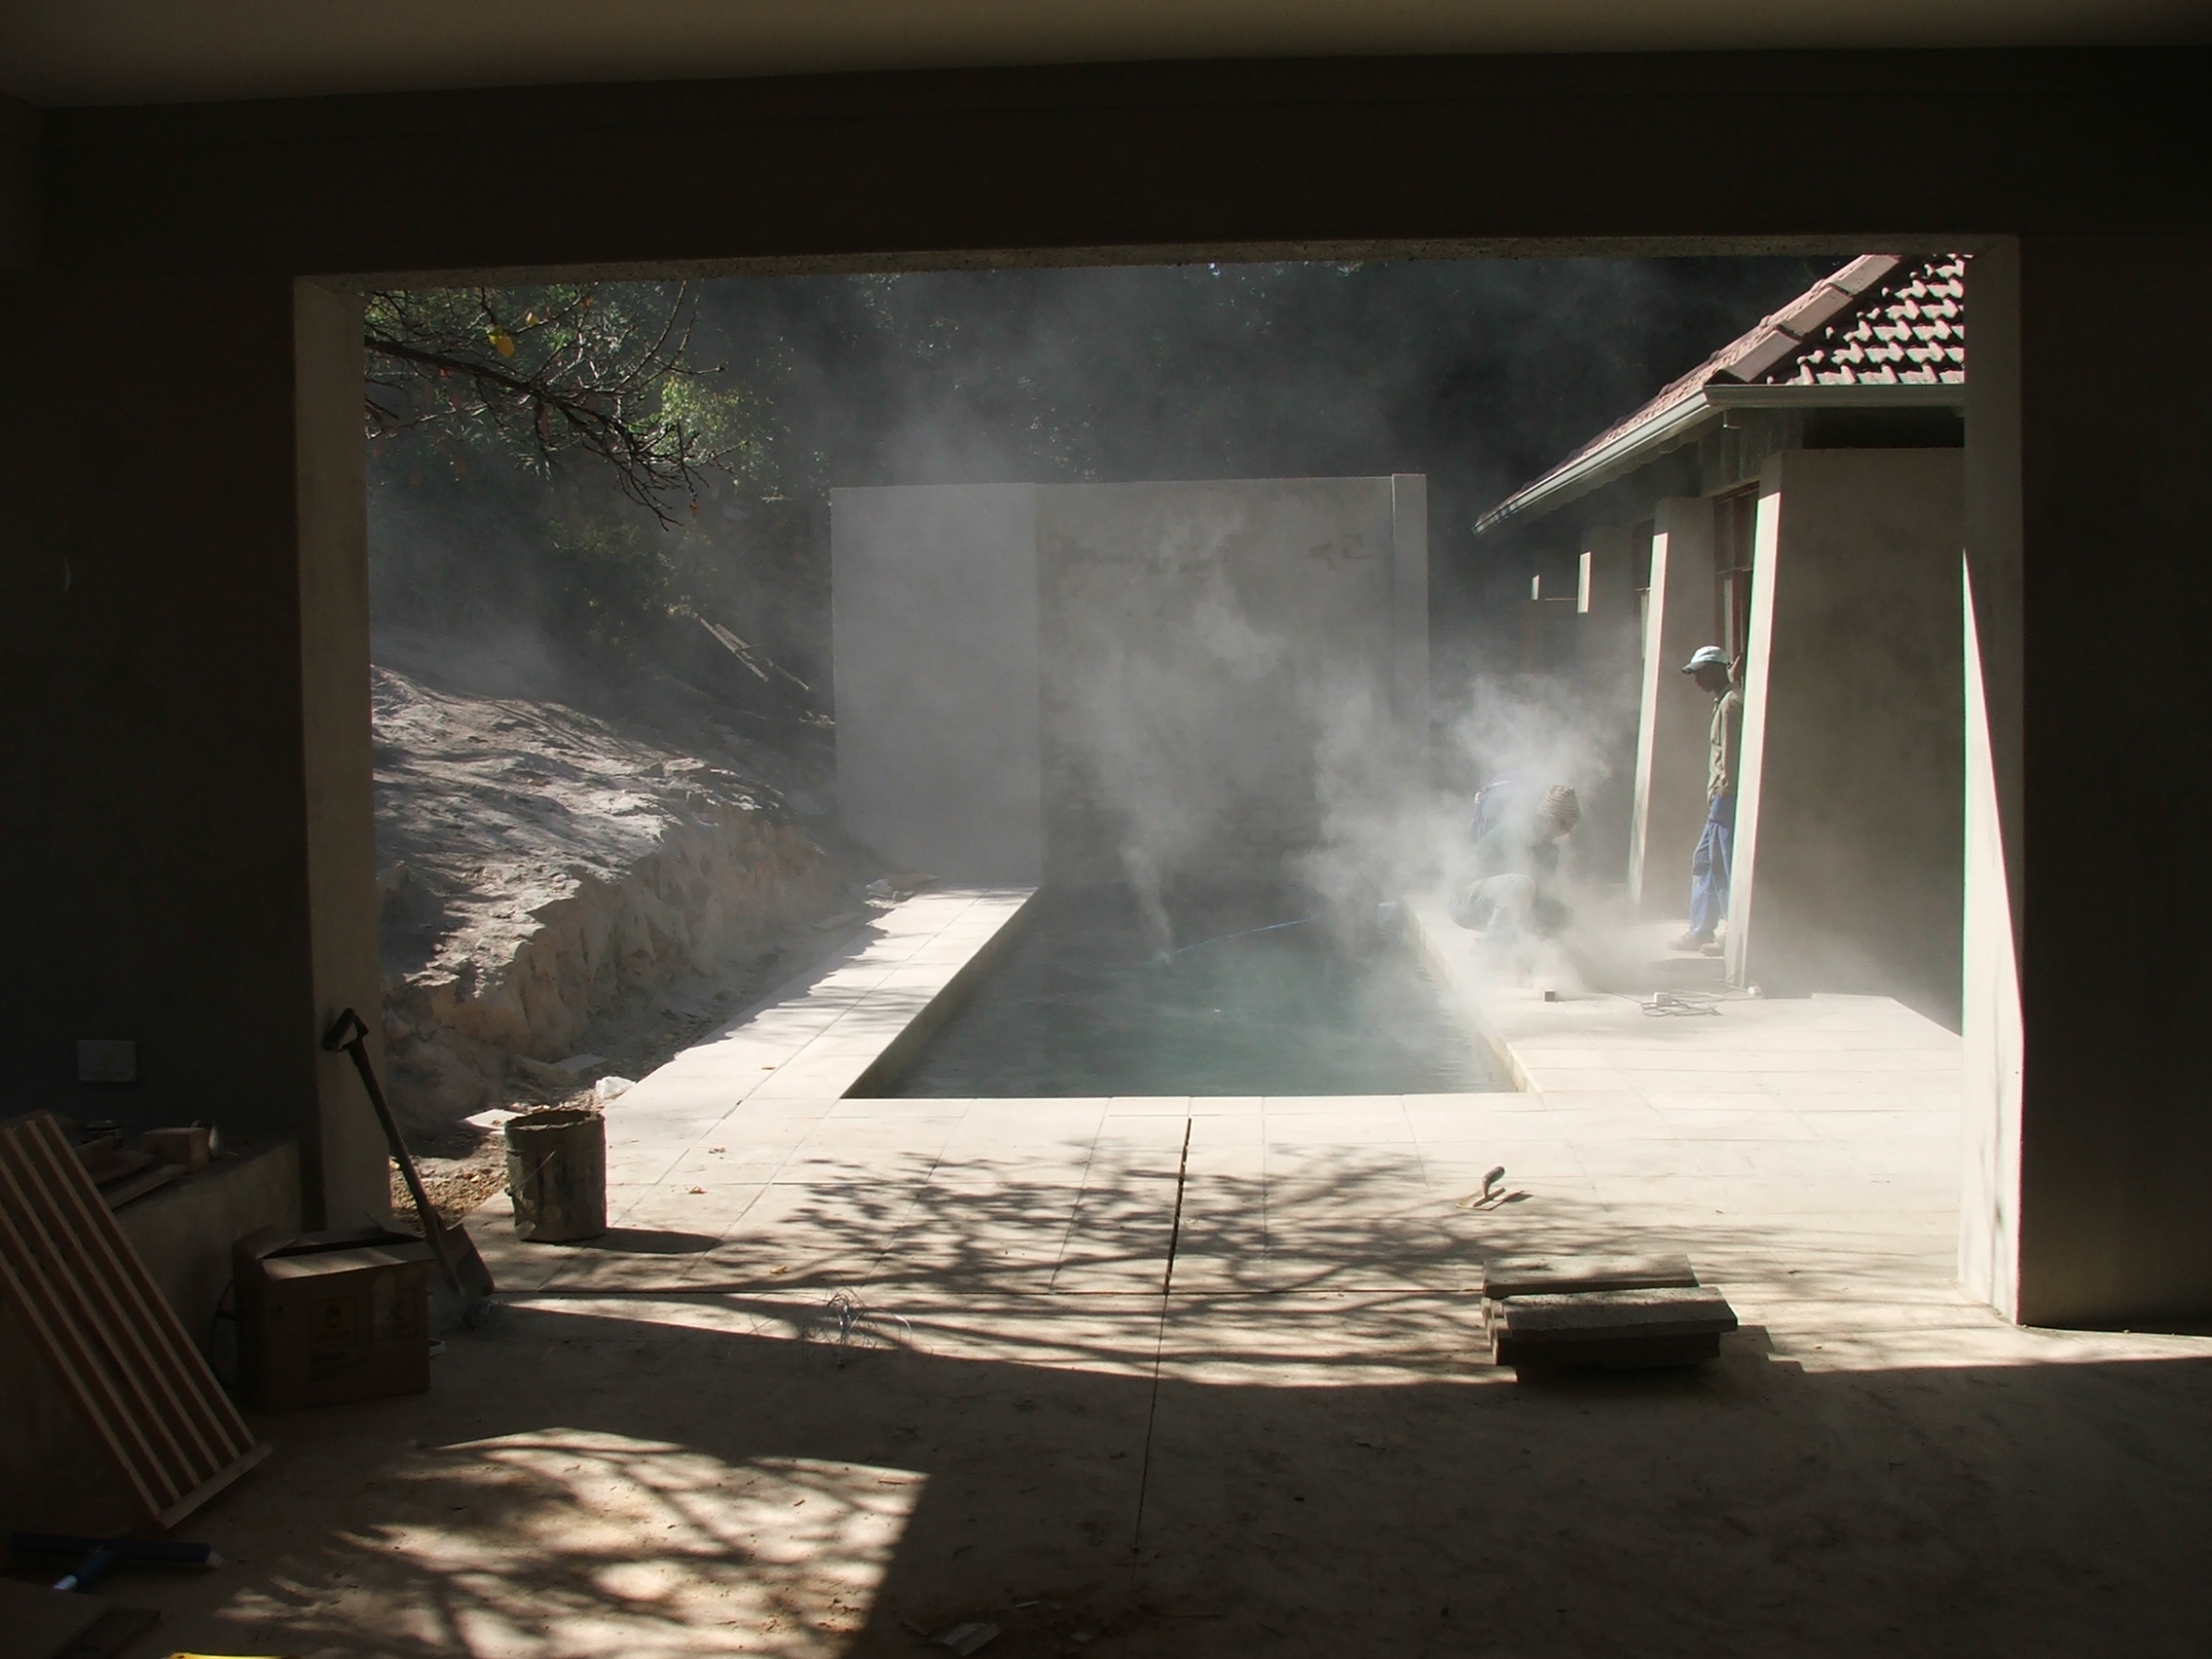 Waterfall - Pool Court Construction